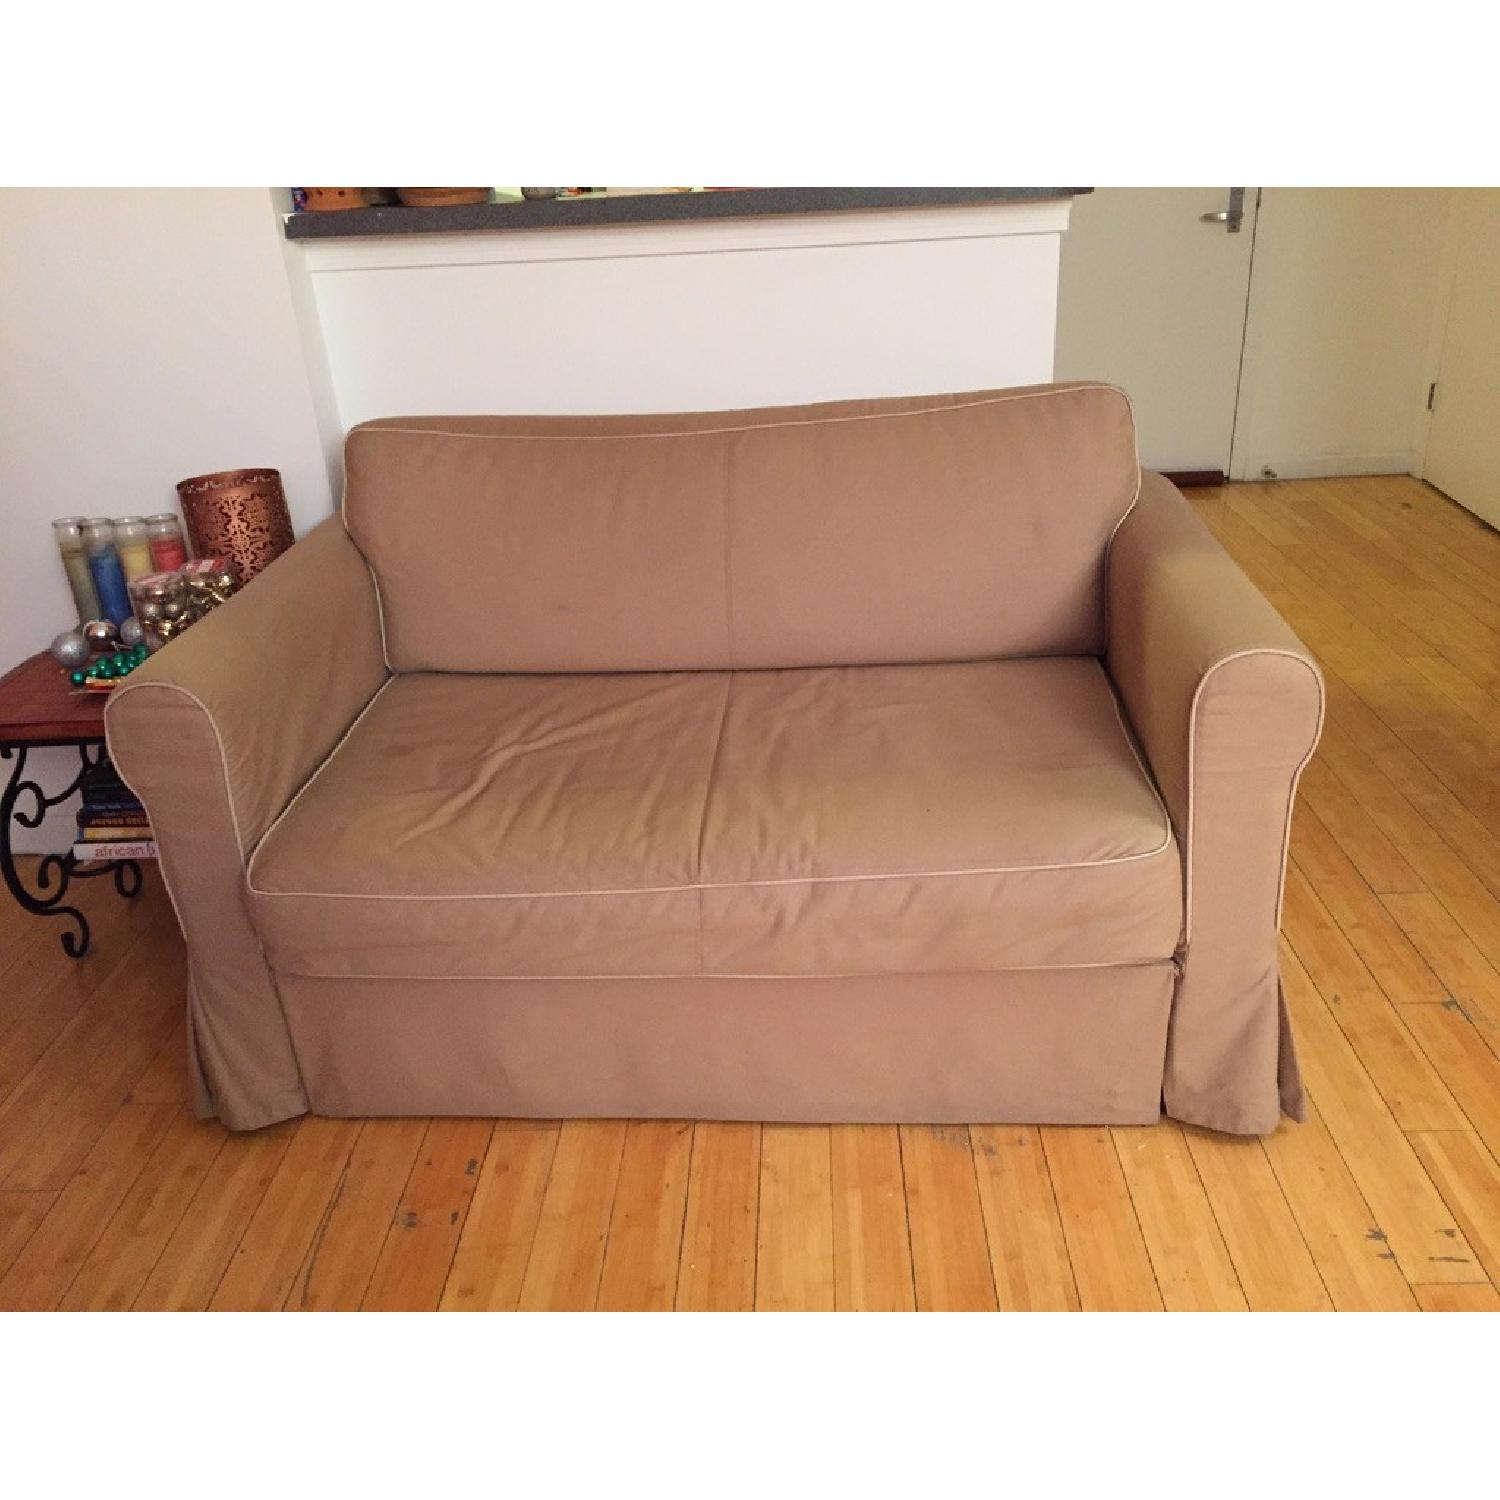 Bettsofa Hagalund Ikea Hagalund Sofa Bed W Storage